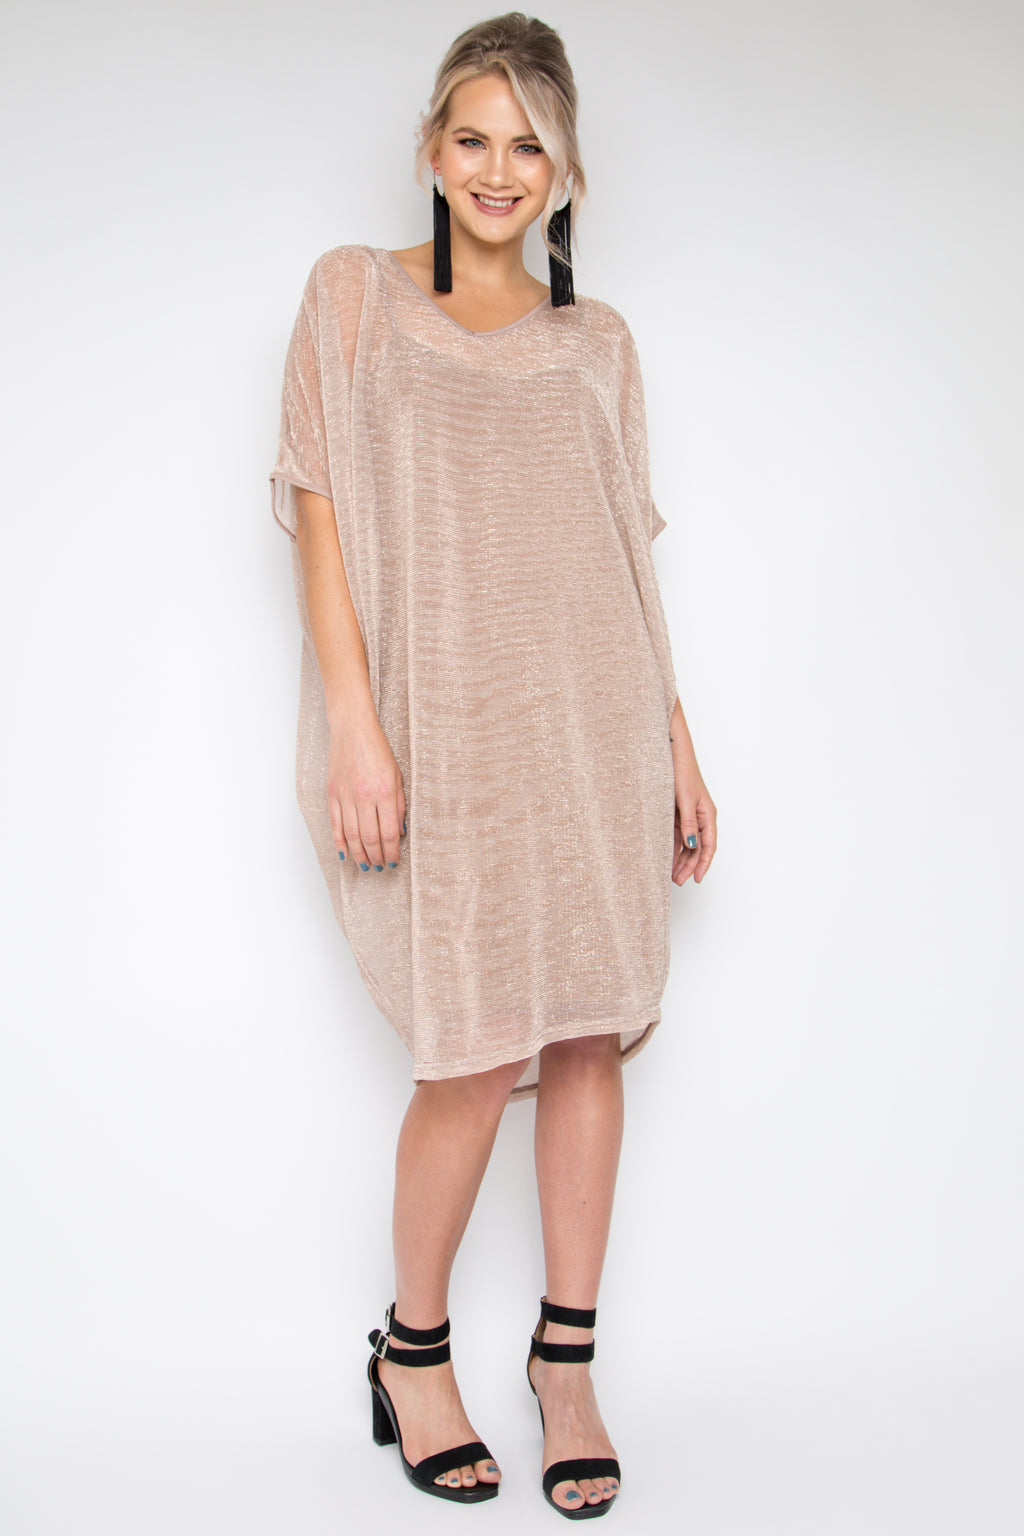 Original Miracle Dress in Mauve Mist (with bamboo slip)